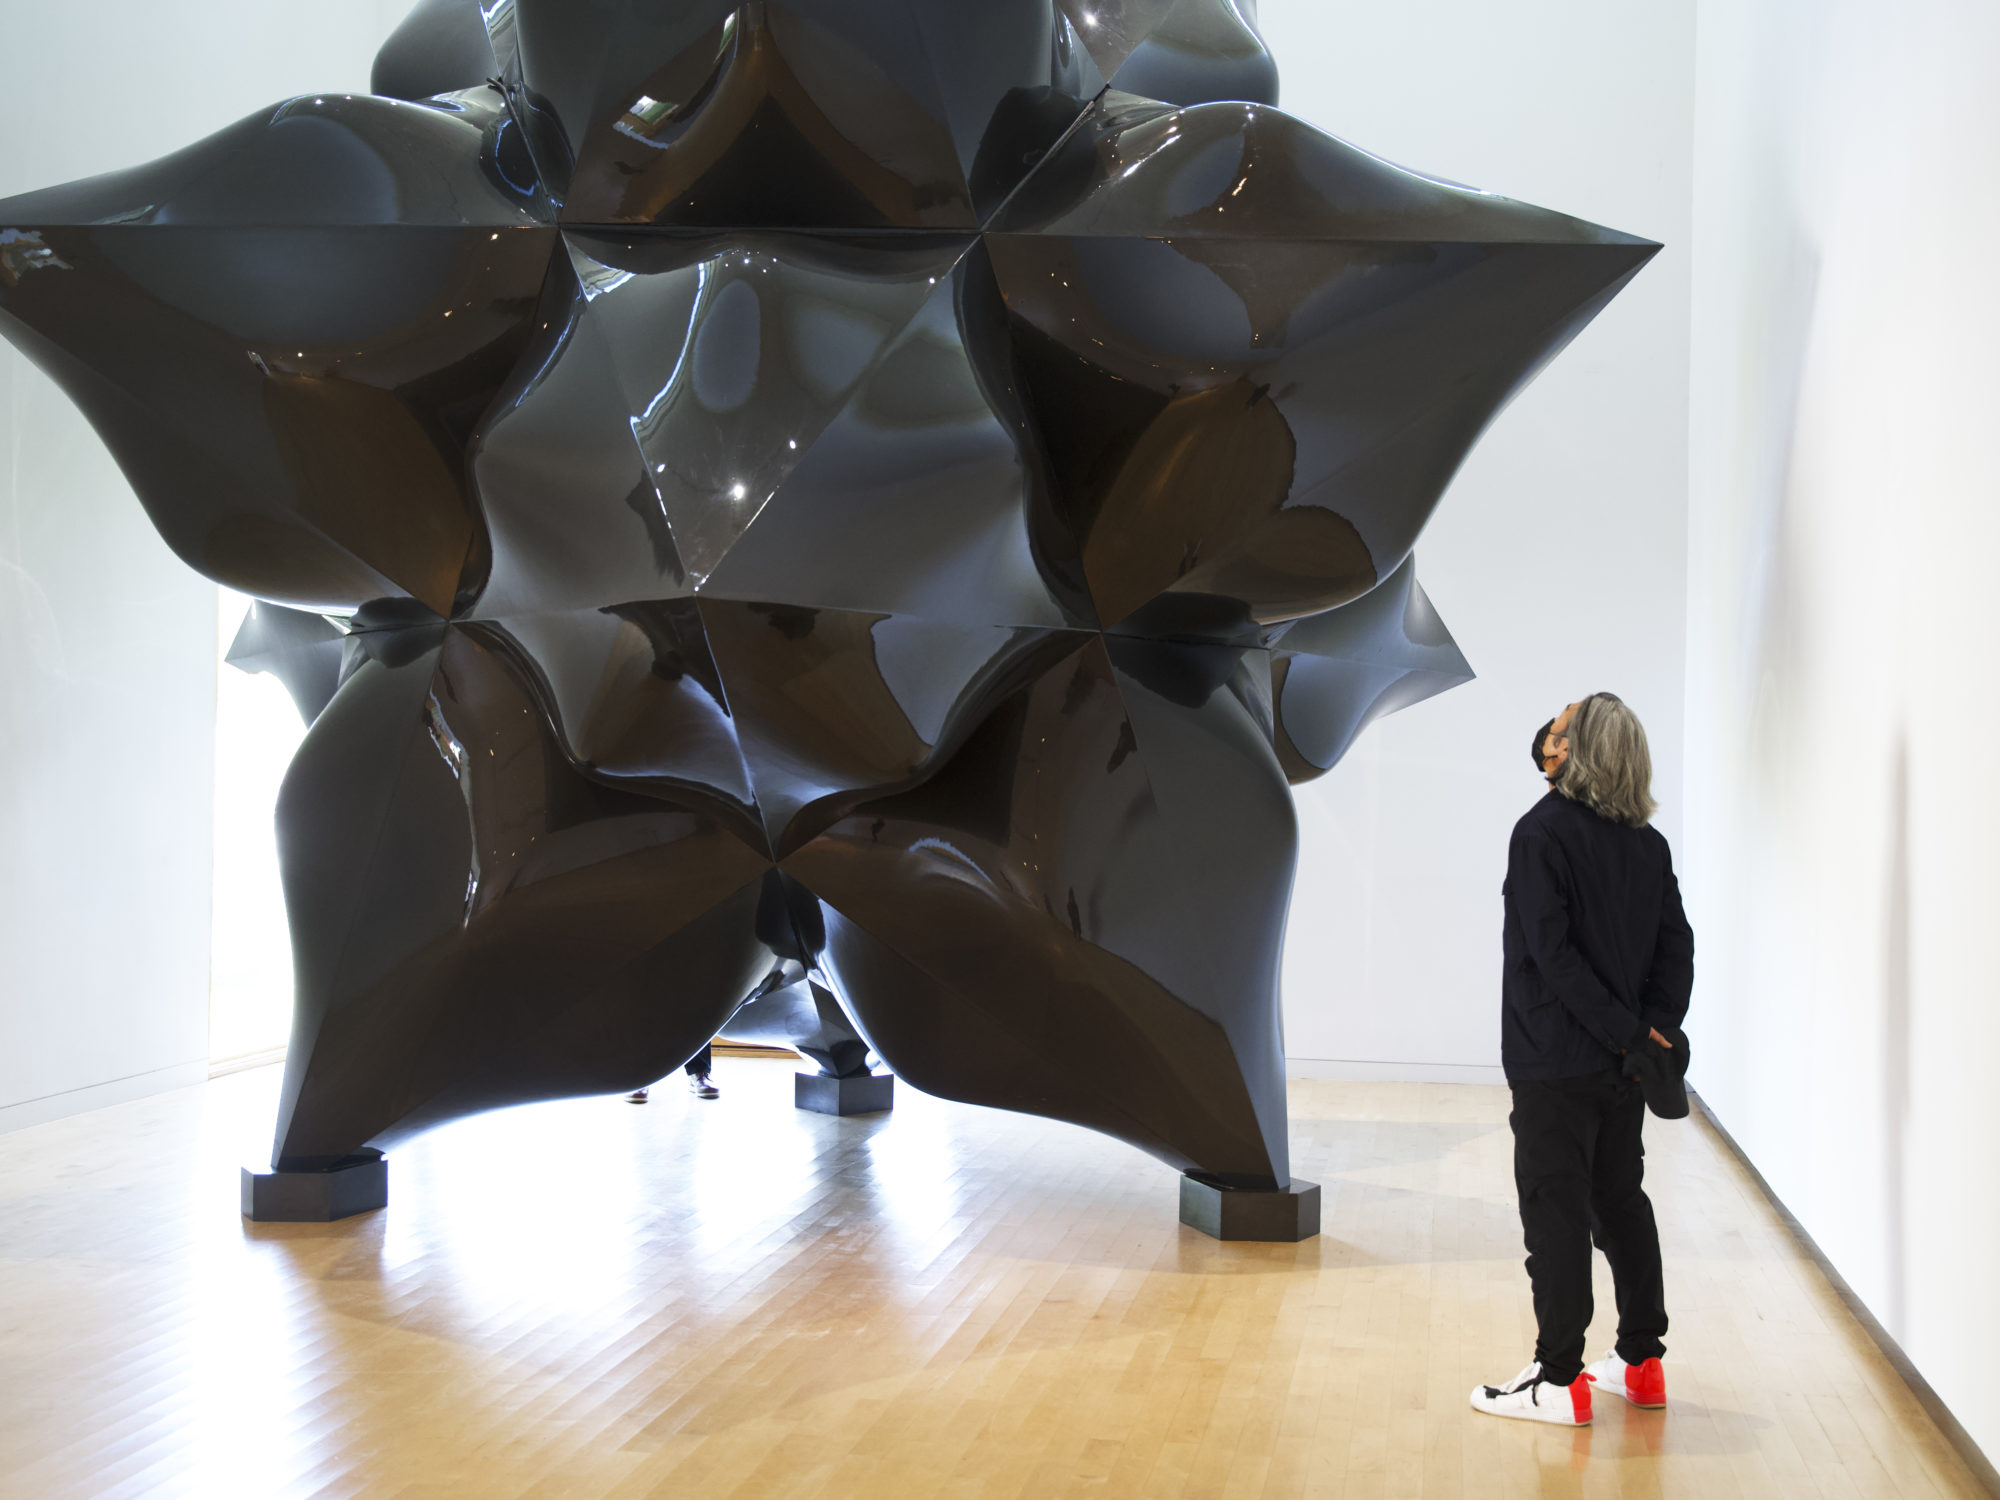 A man wearing all black with long gray hair views a large-scale black star sculpture by Frank Stella.